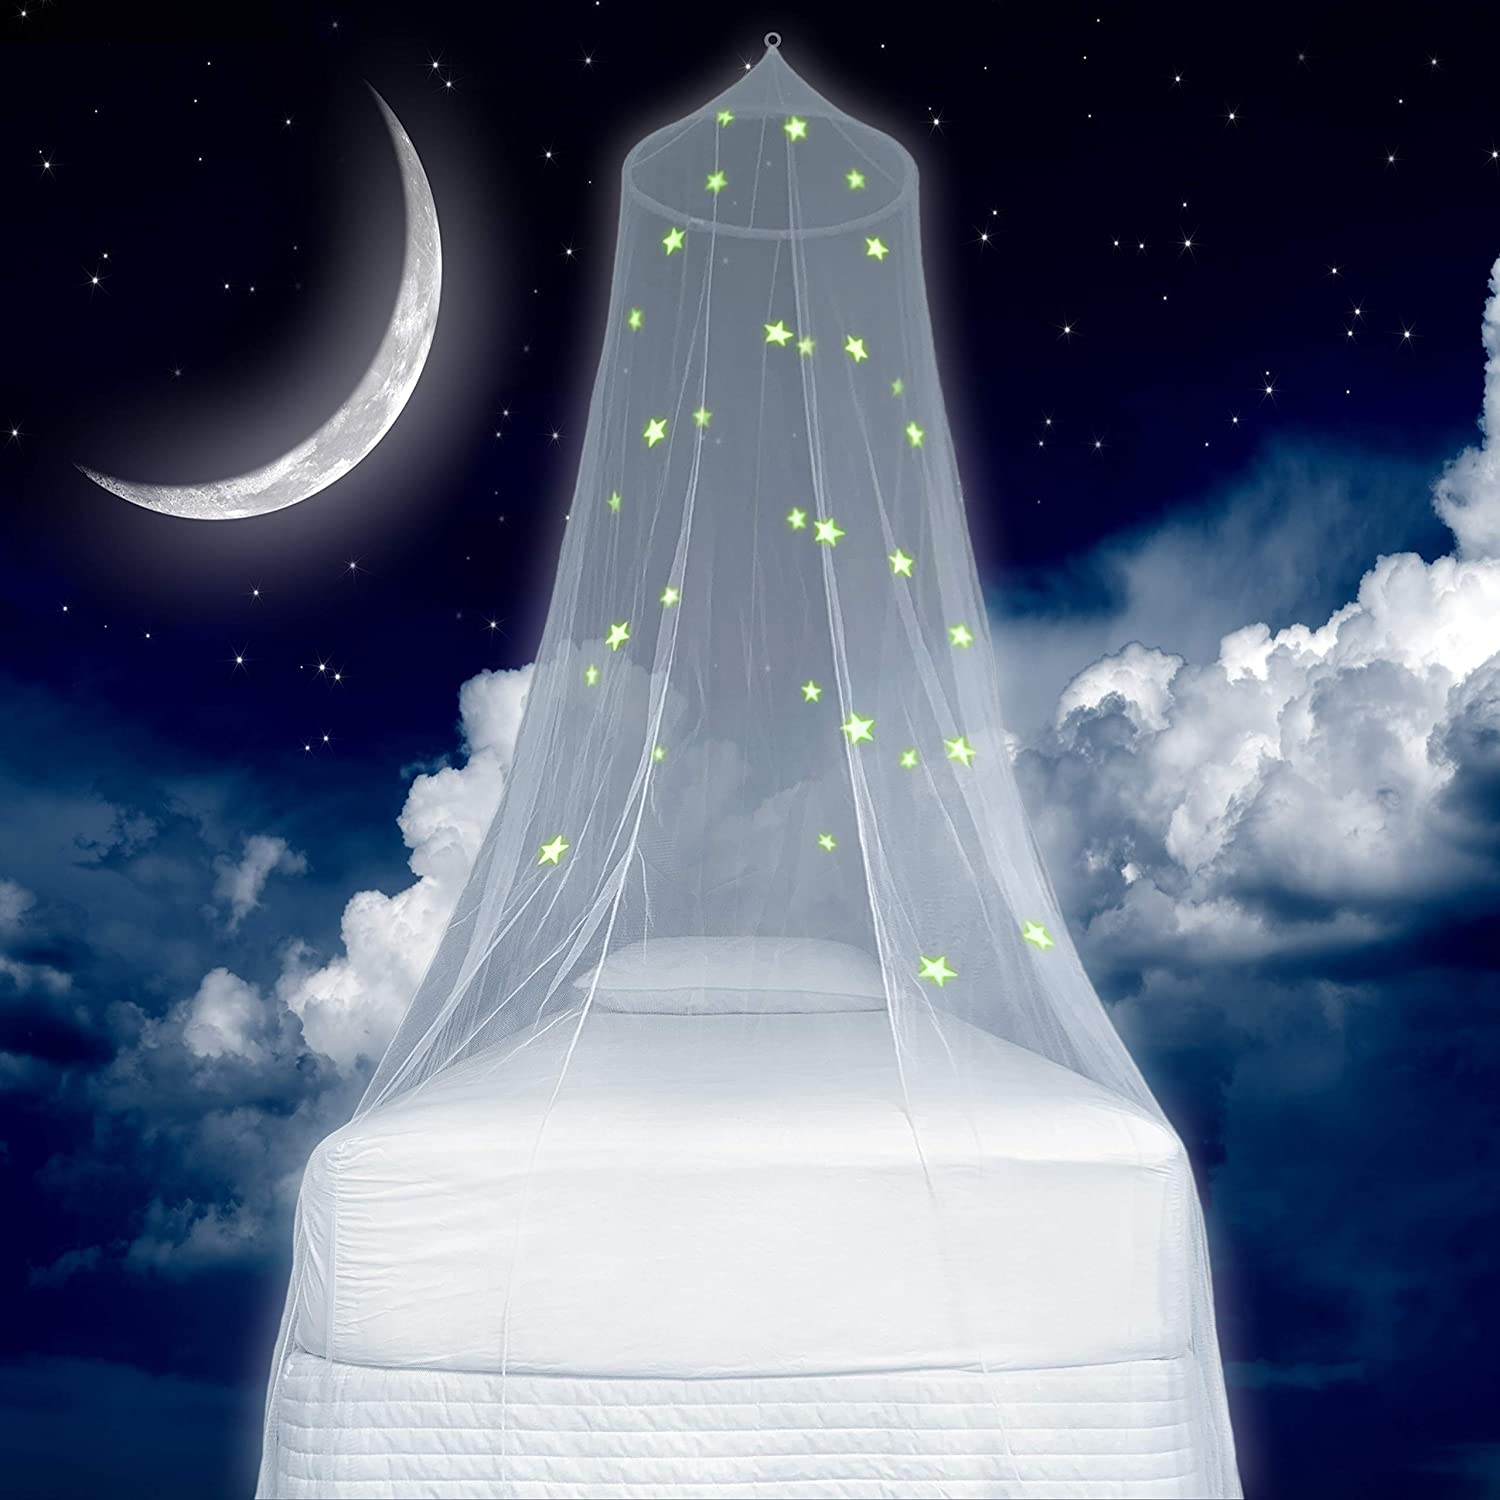 Zeke and Zoey Kids Hanging Bed Canopy for Girls Bed or Boys with Glow in The Dark Stars, The Bed Netting Stars Will Light up Your Child's own Galaxy. Ideal Bedroom Decorative Tent